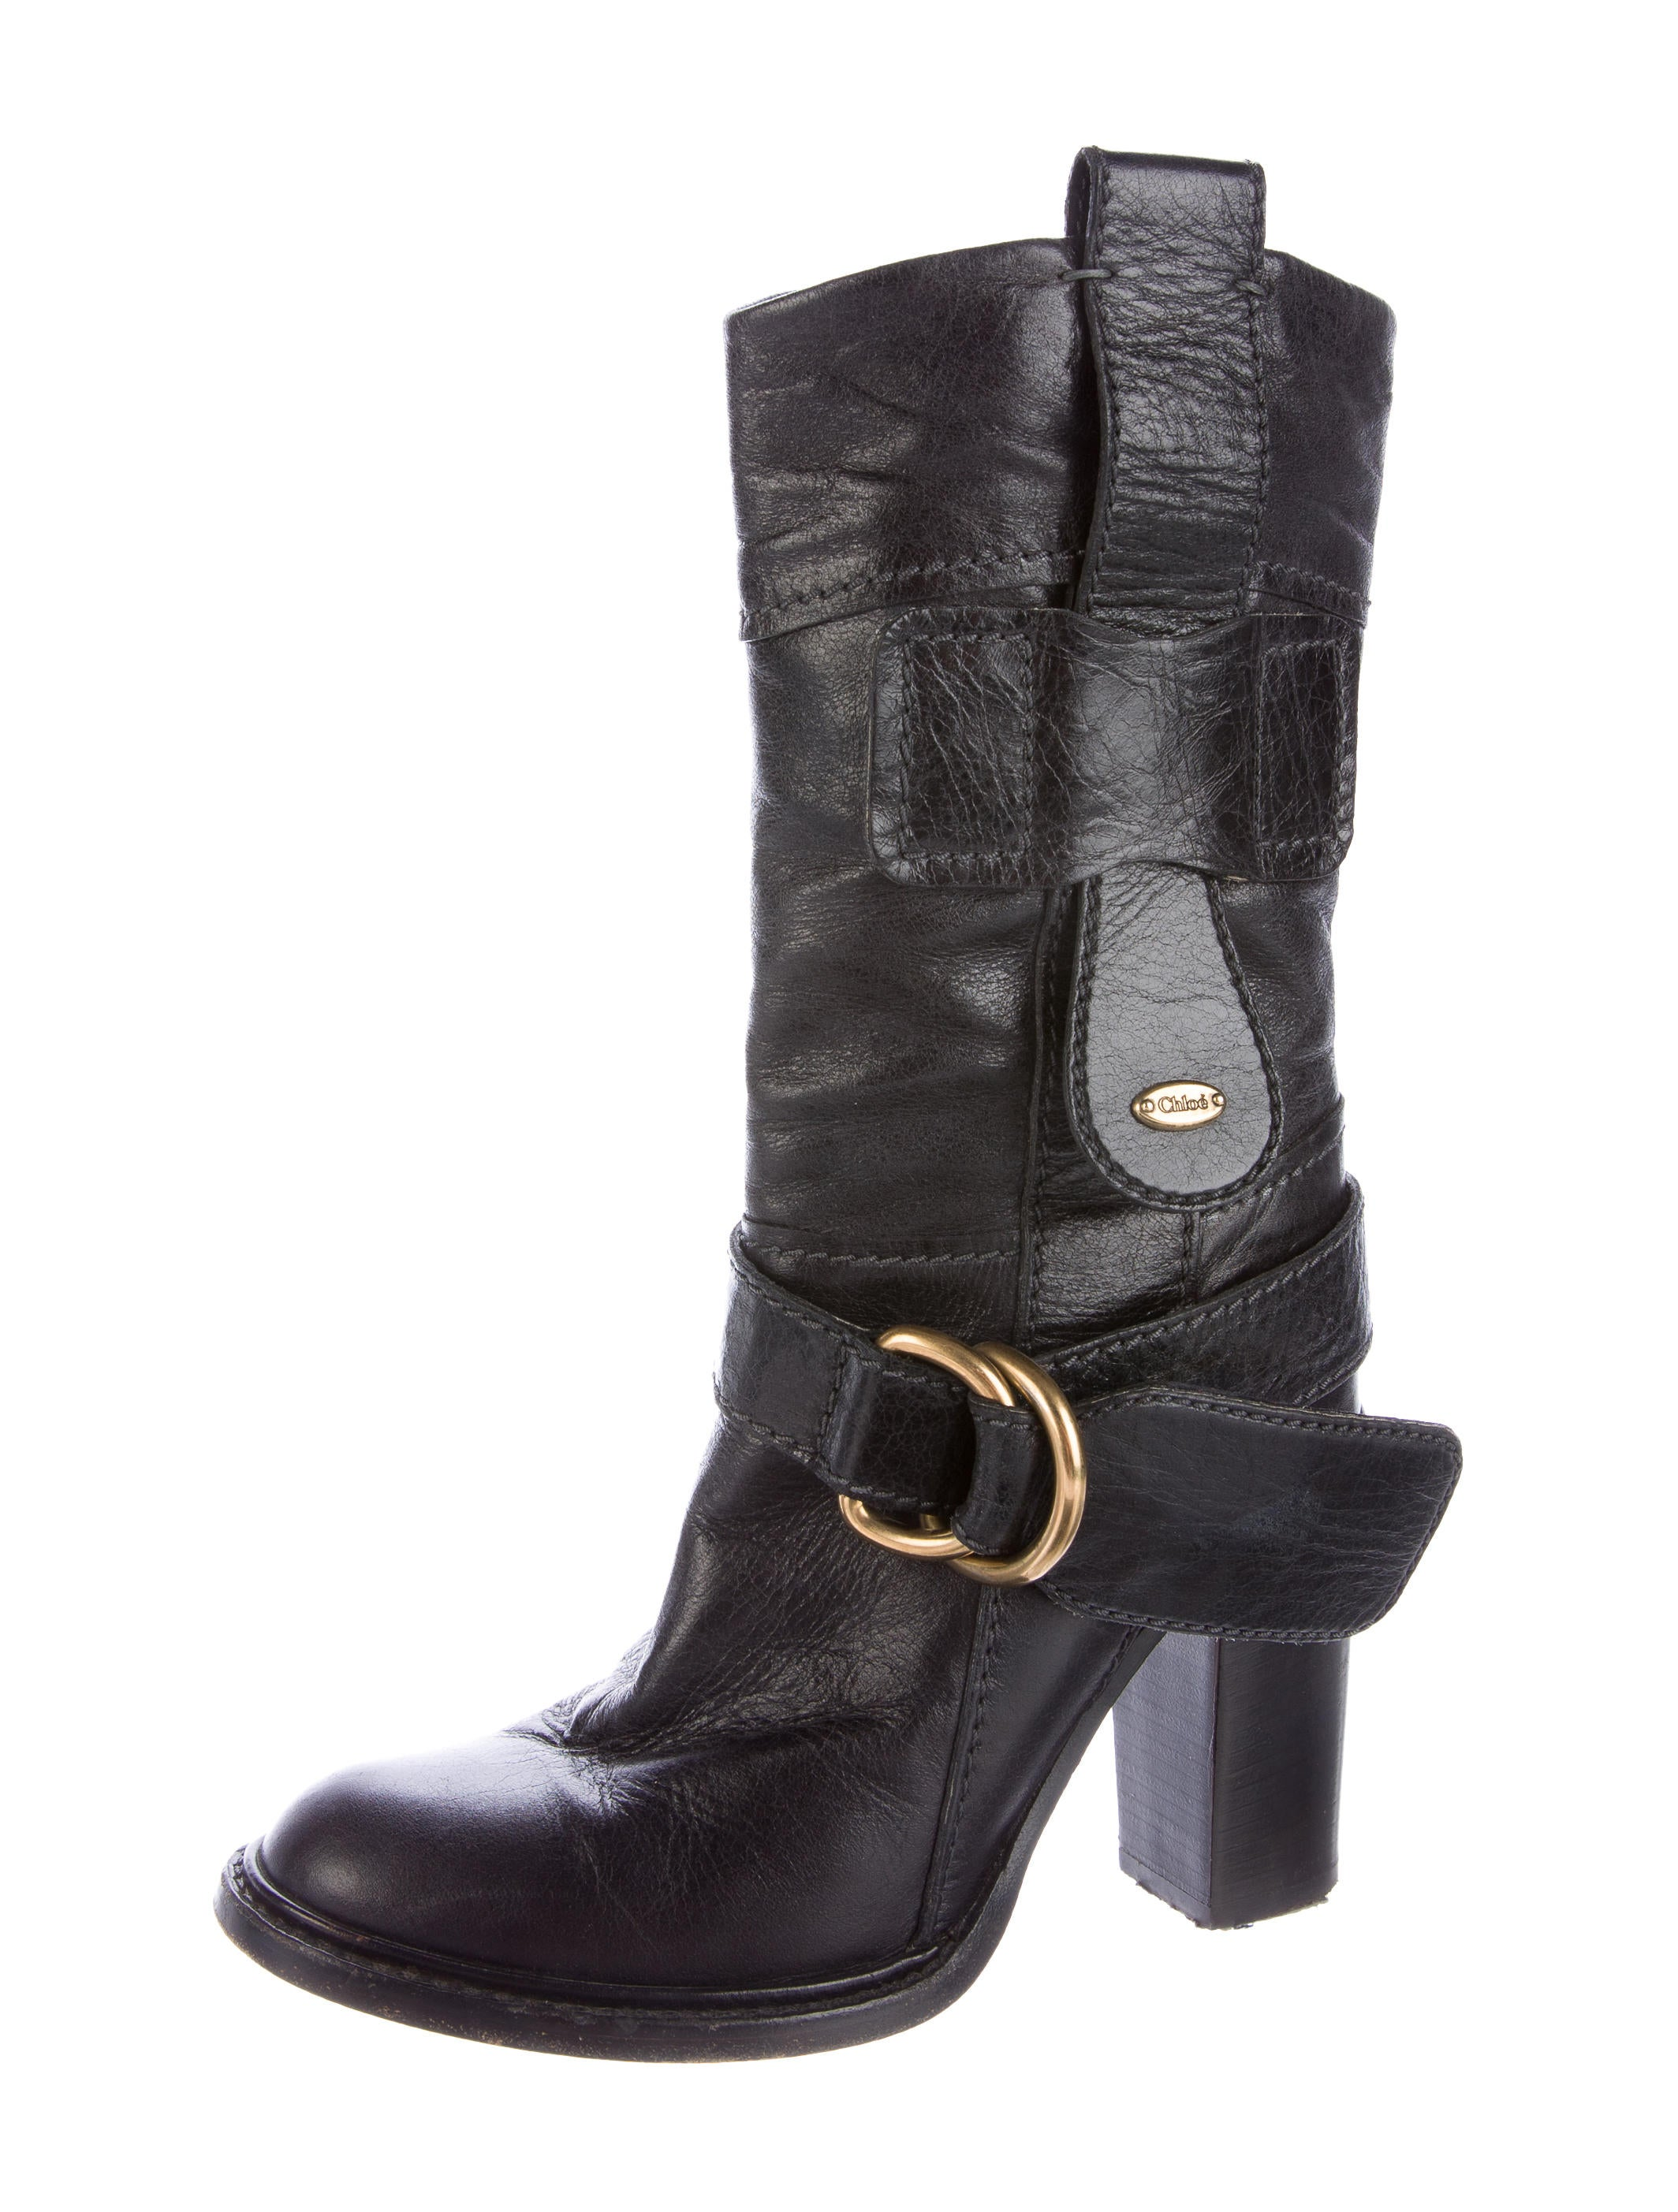 chlo 233 leather buckle accented ankle boots shoes